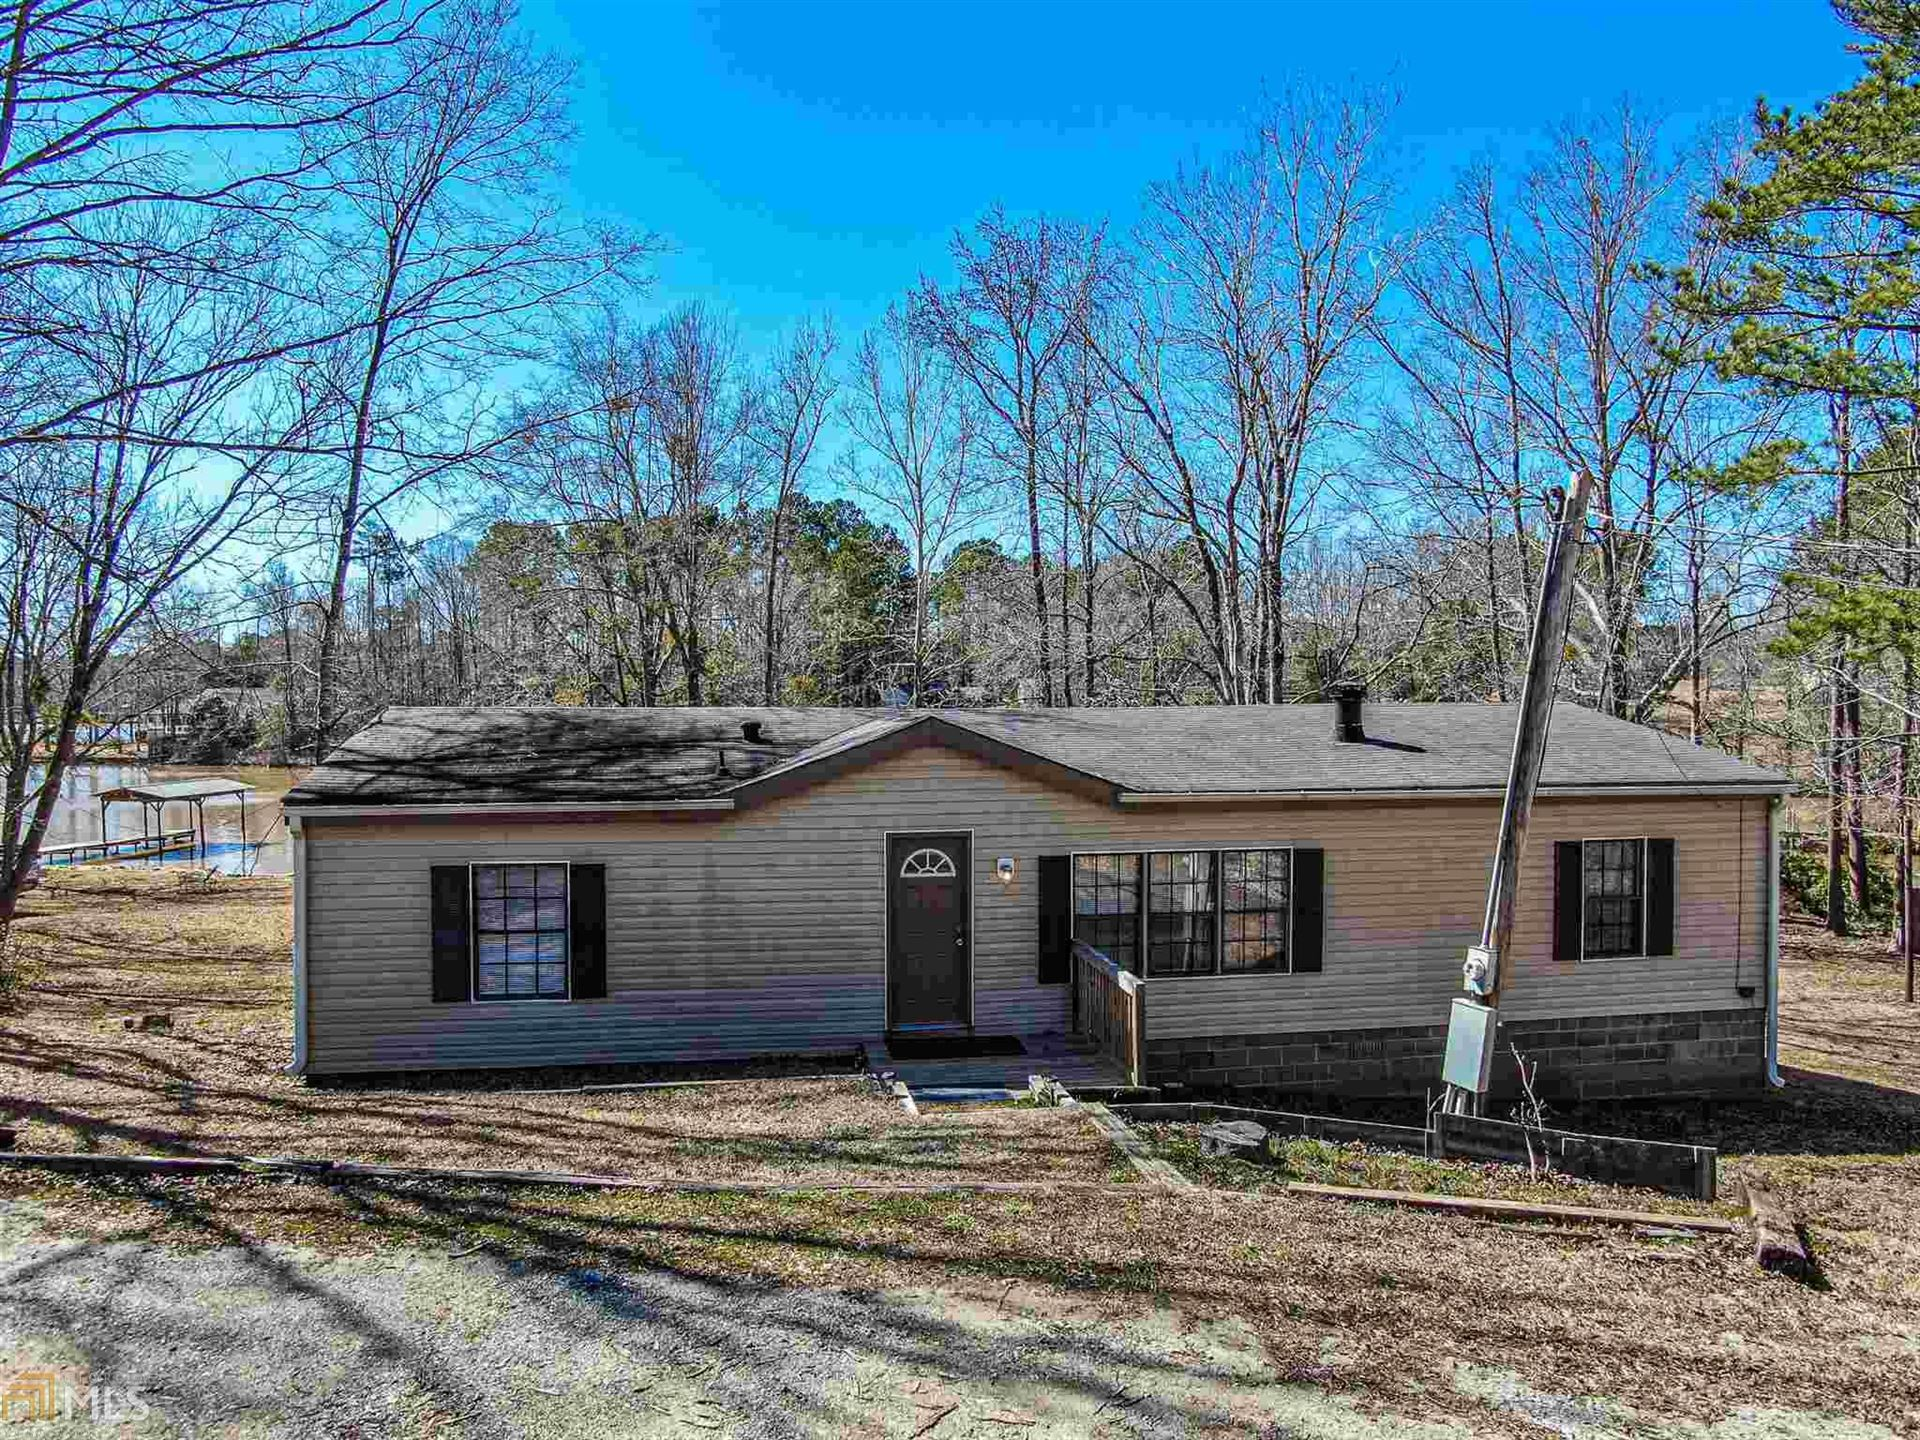 120 W Little River Ct, Eatonton, GA 31024 - MLS#: 8932761